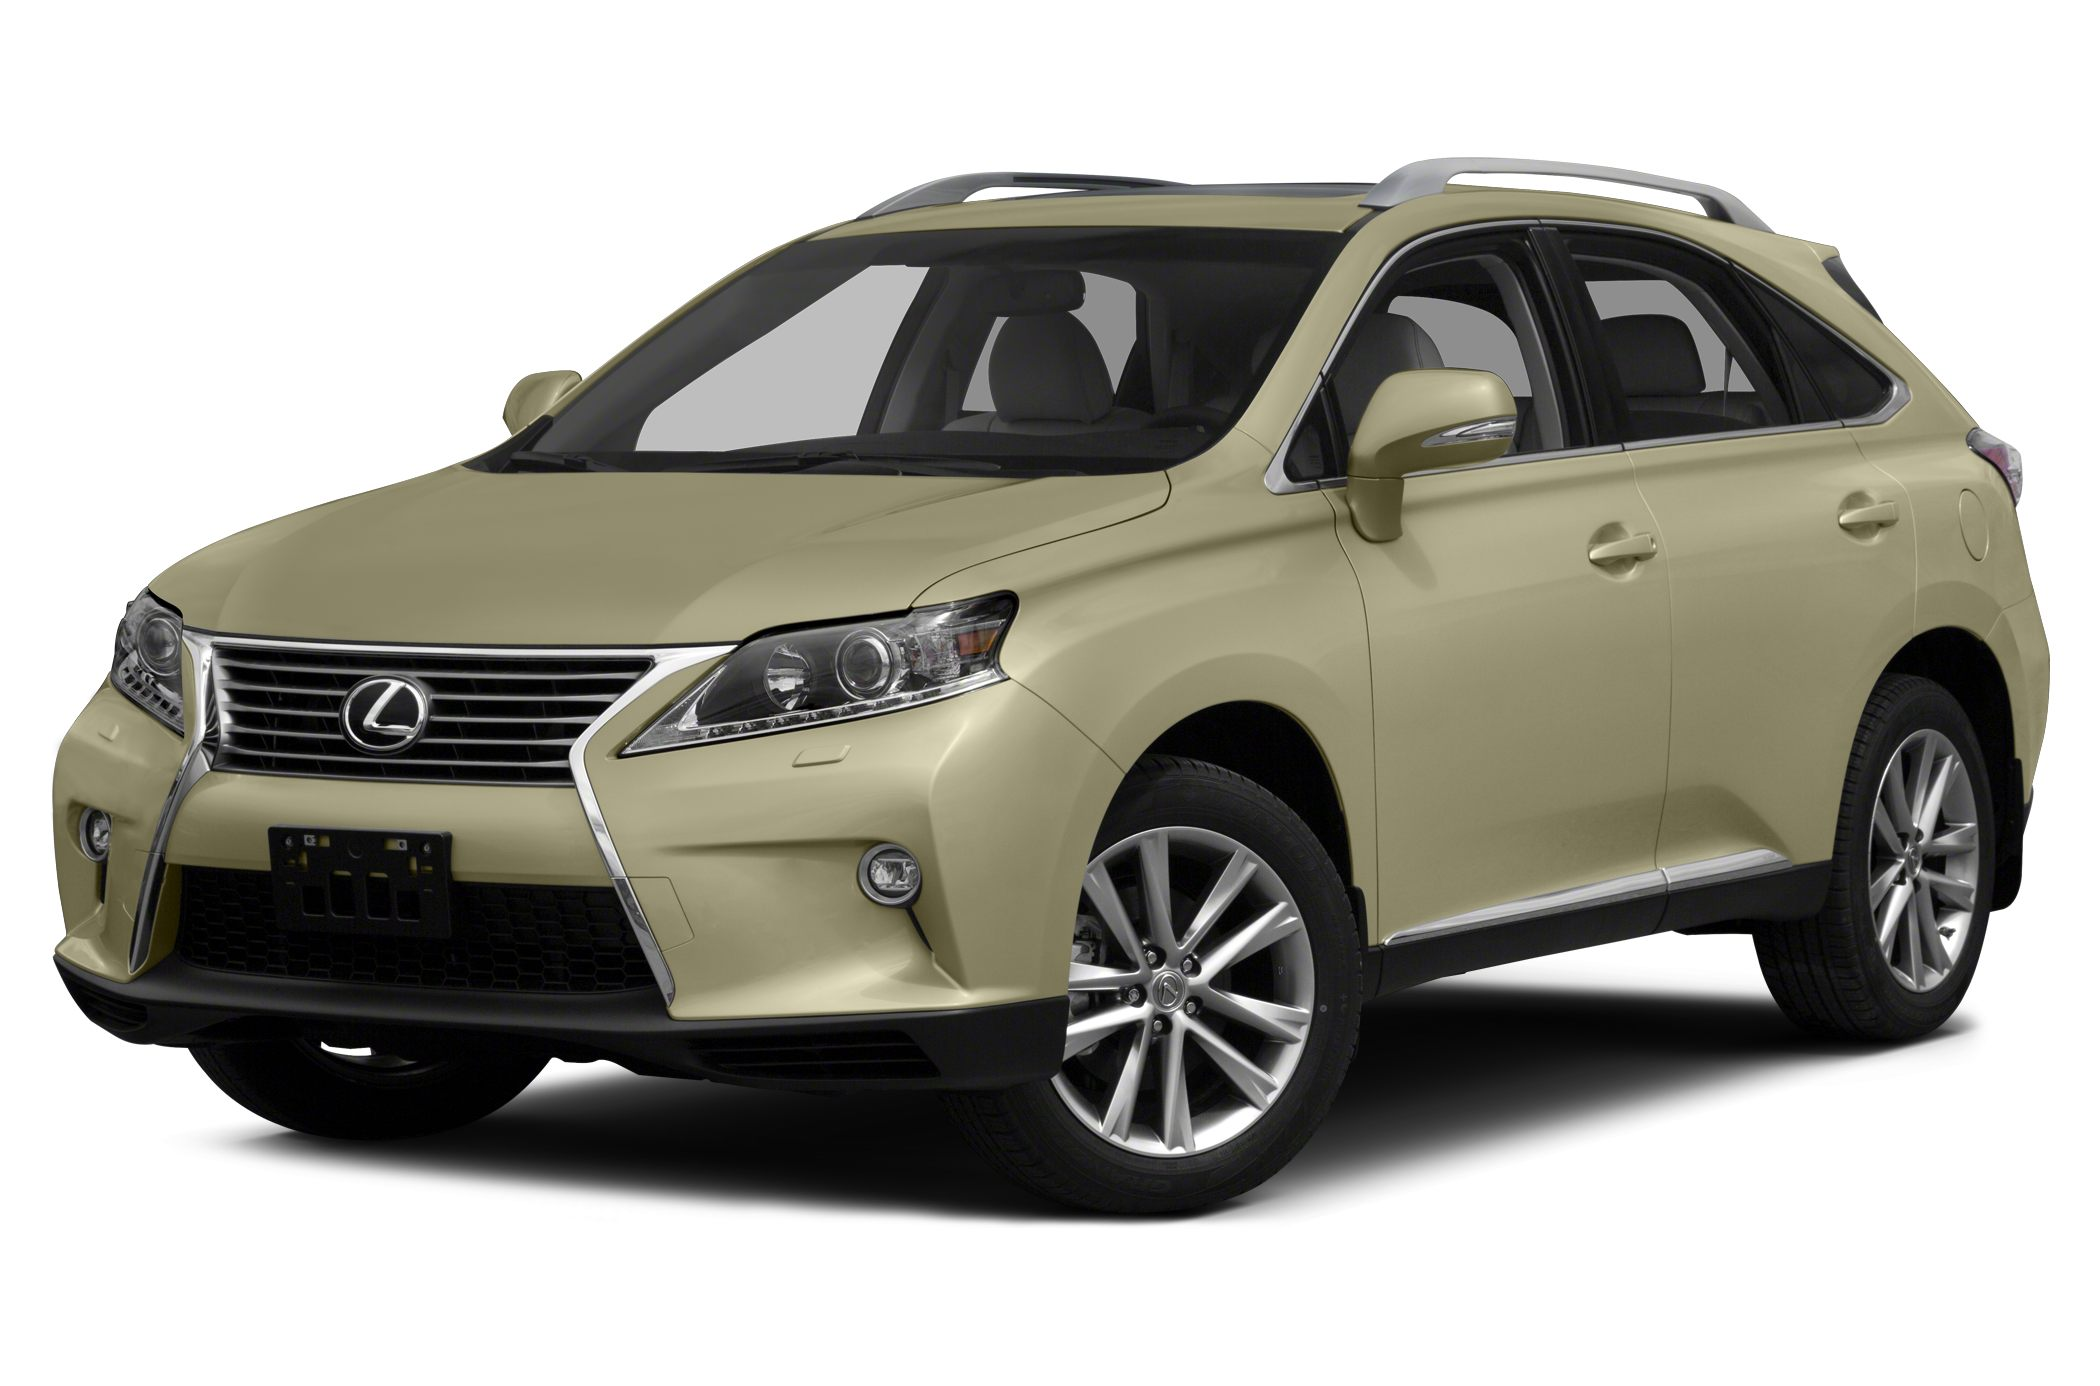 2015 Lexus RX 350 Base SUV for sale in Little Rock for $47,324 with 0 miles